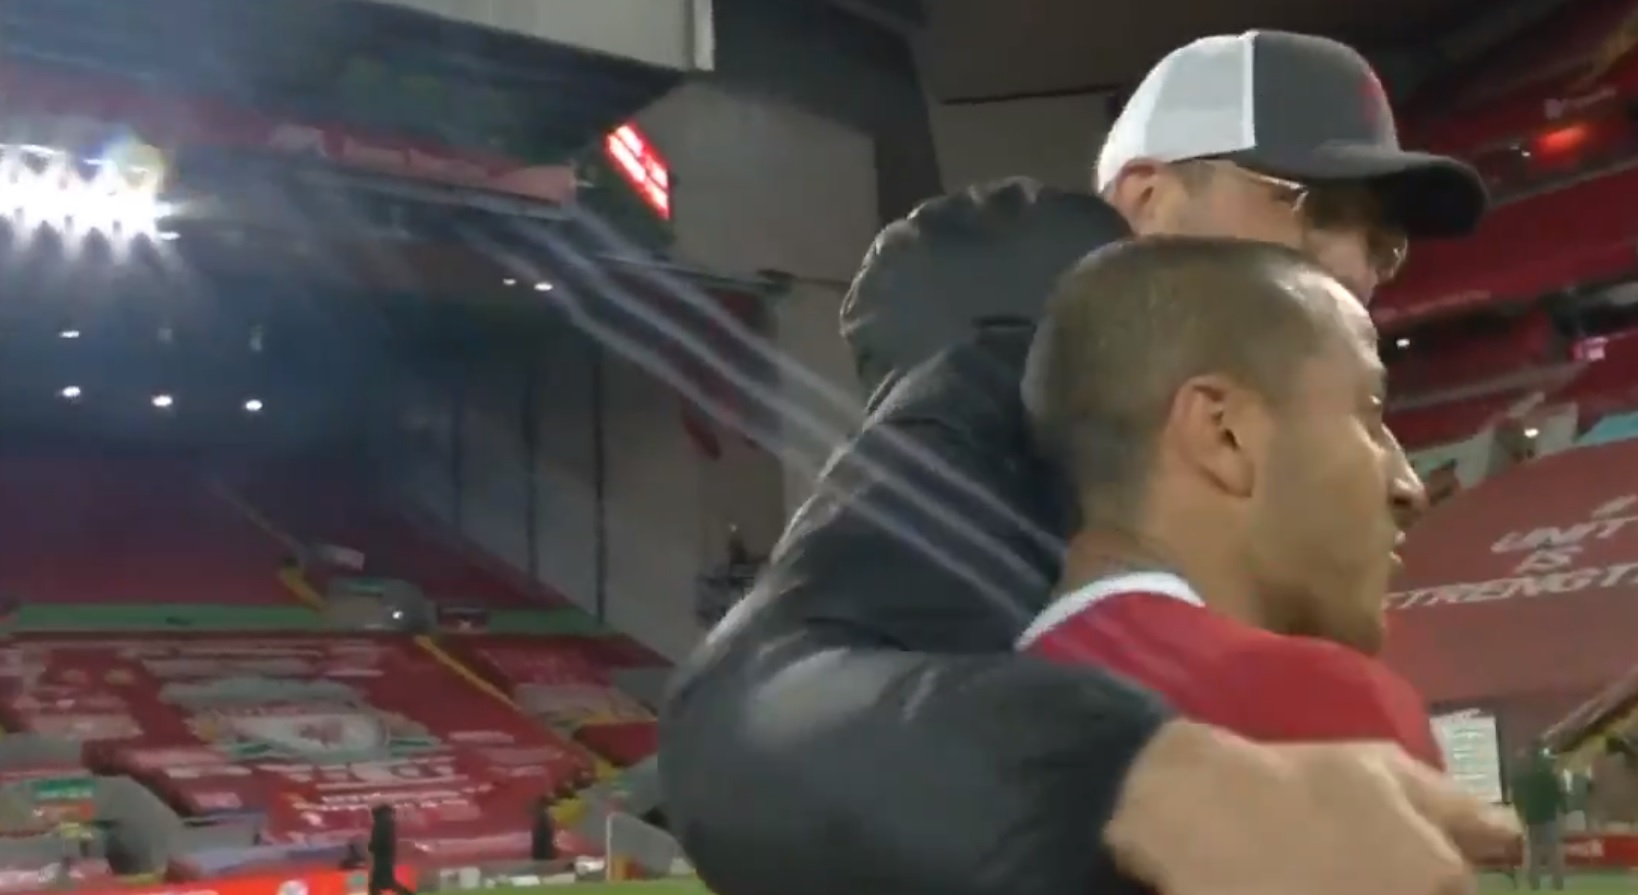 (Video) Beaming Klopp embraces Thiago at FT after late screamer ensures Liverpool win